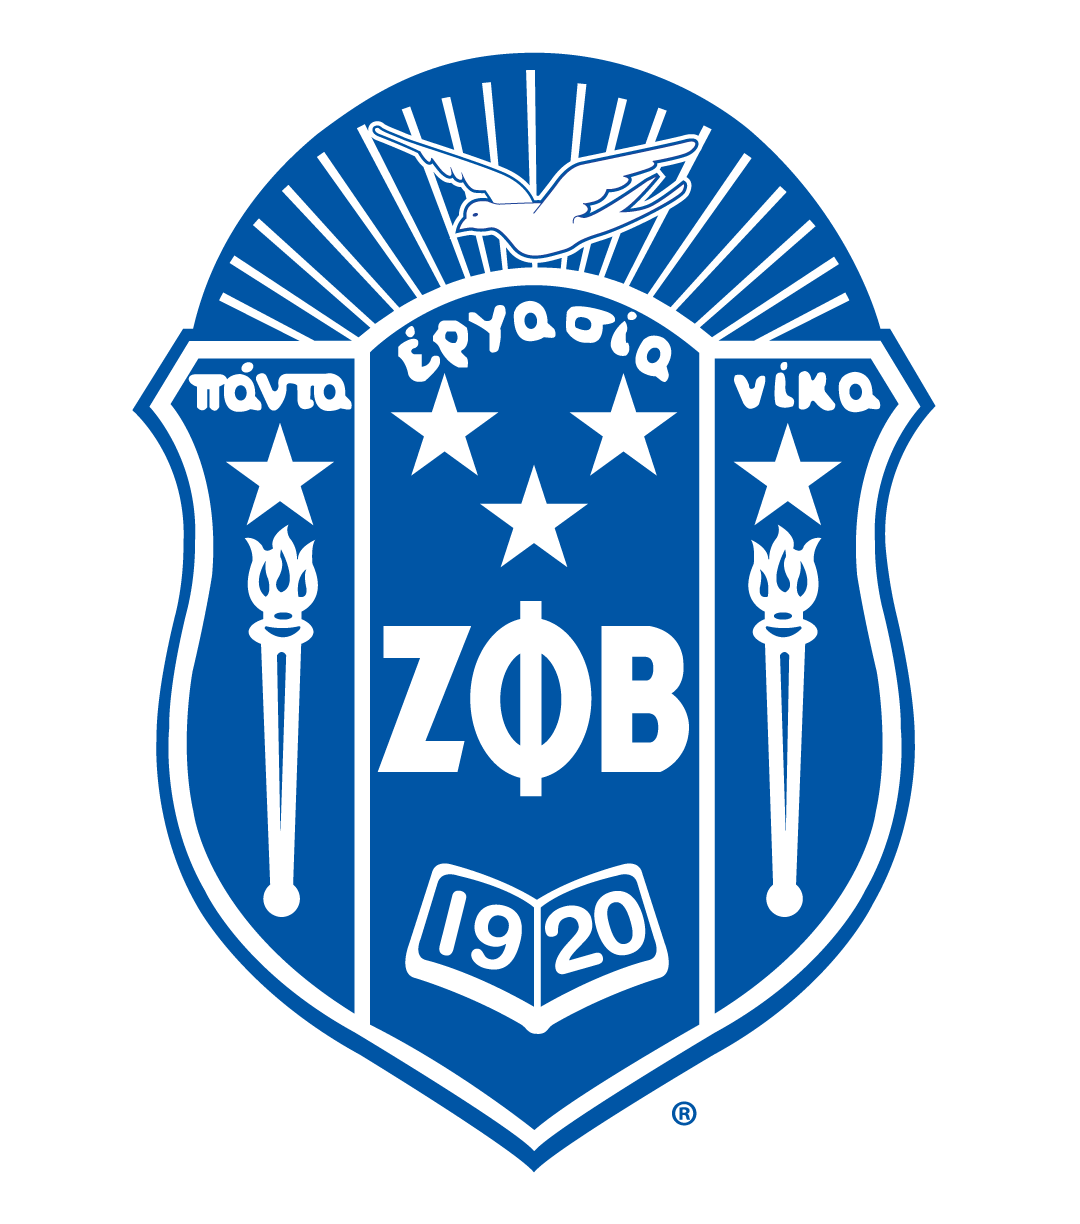 Zeta Phi Beta Sorority Inc., Tau Xi Zeta Chapter